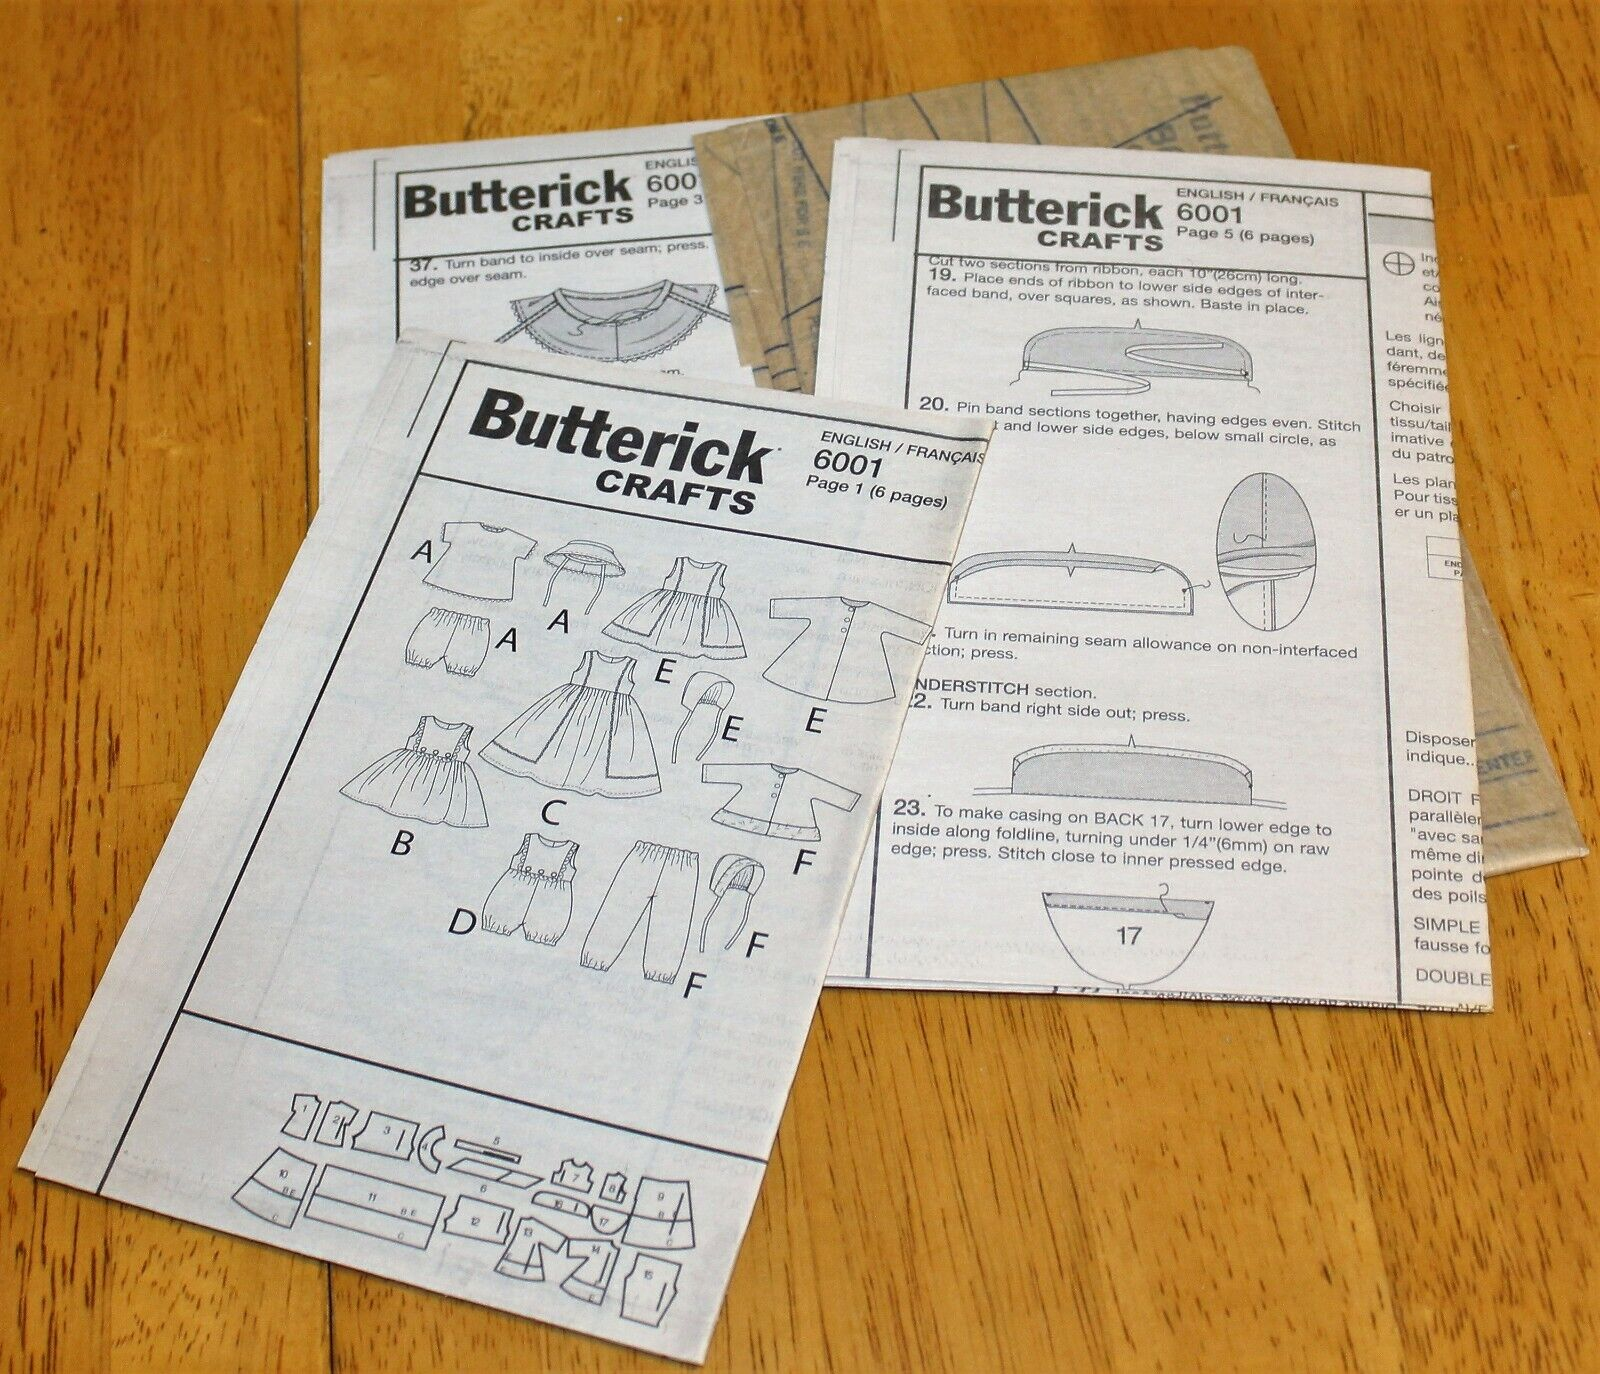 Butterick PATTERN 6001 RETRO 56 DOLL CLOTHES 18 INCH DOLL - NEW - $4.49